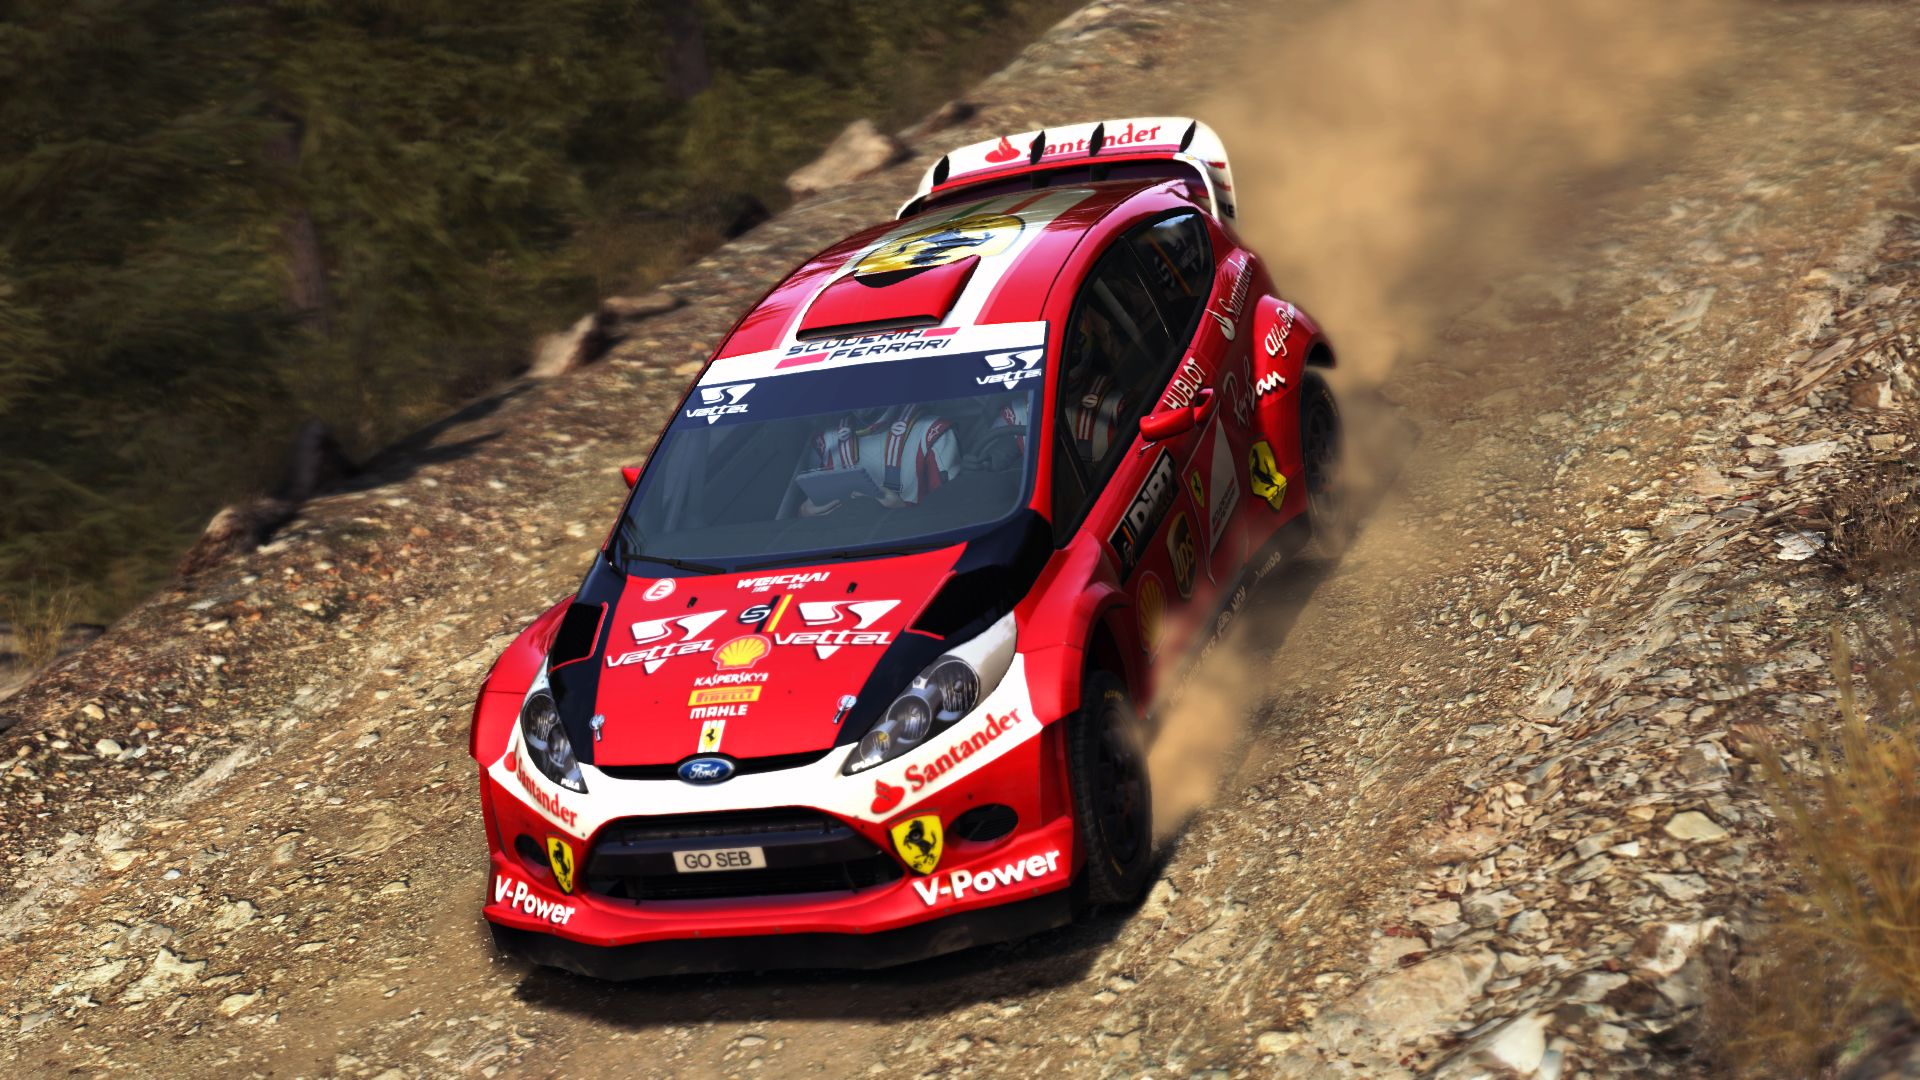 Fiesta Rs 2017 >> Scuderia Ferrari F1 2017 Fiesta WRC | RaceDepartment - Latest Formula 1, Motorsport, and Sim ...